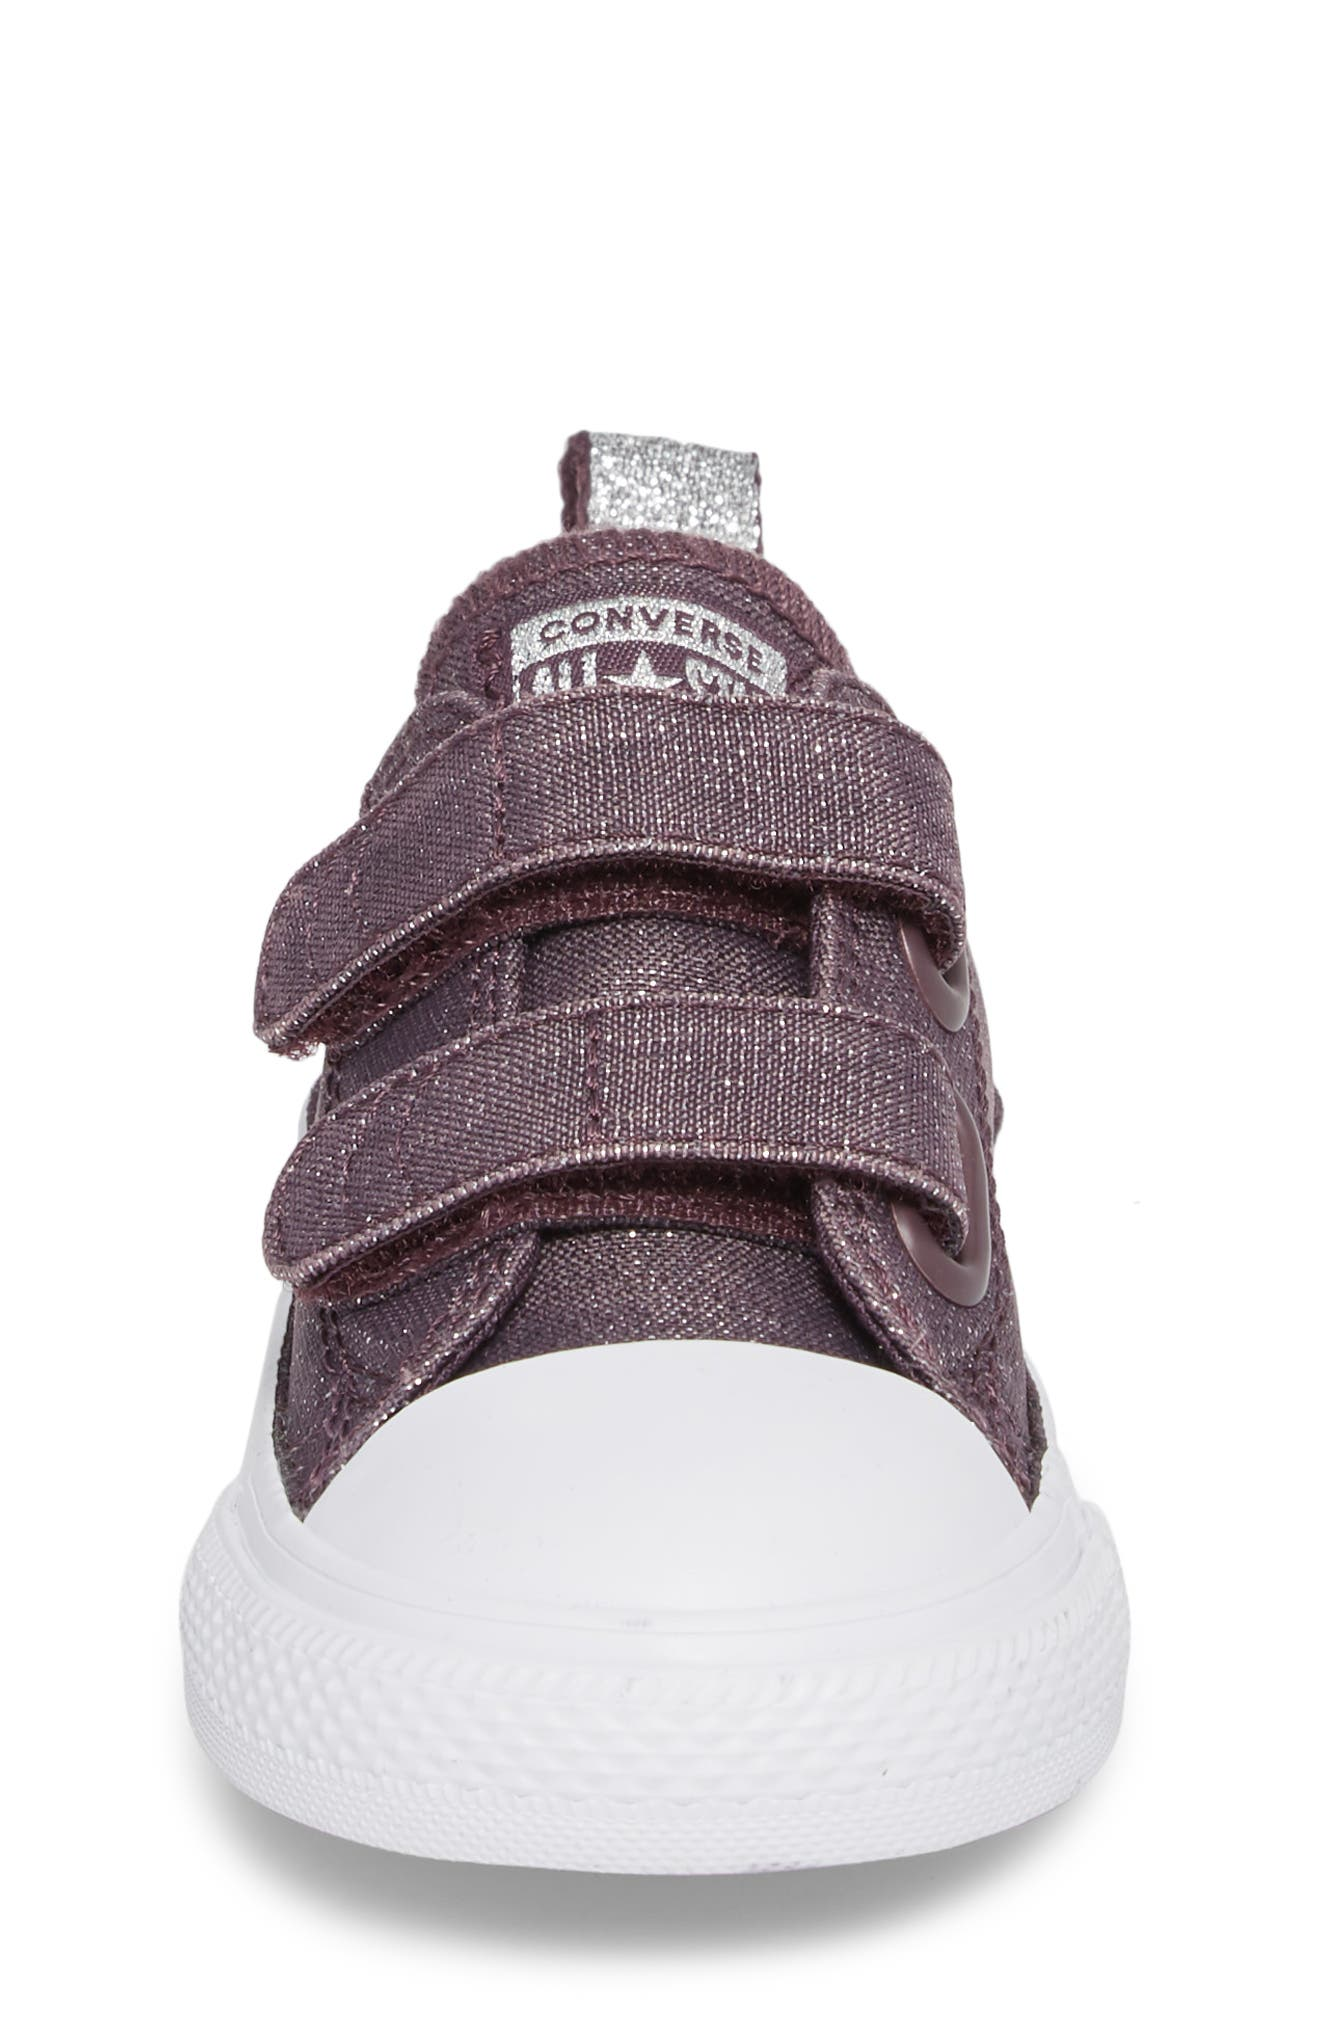 All Star<sup>®</sup> Shimmer 2V Sneaker,                             Alternate thumbnail 4, color,                             Dusk Purple